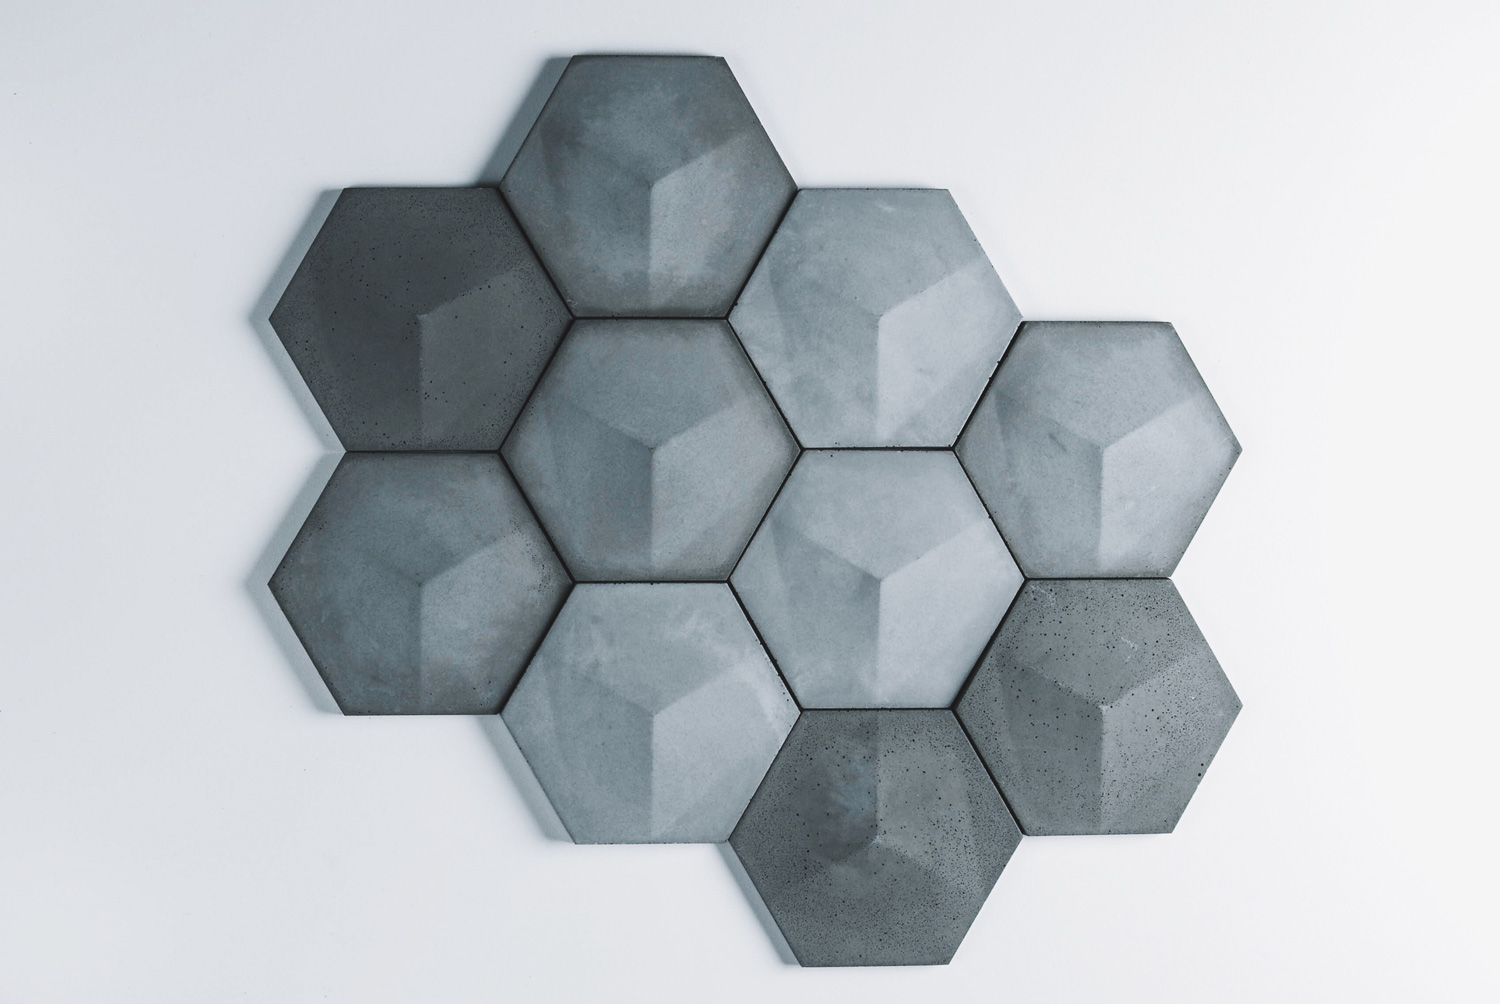 Hexagon concrete wall tile